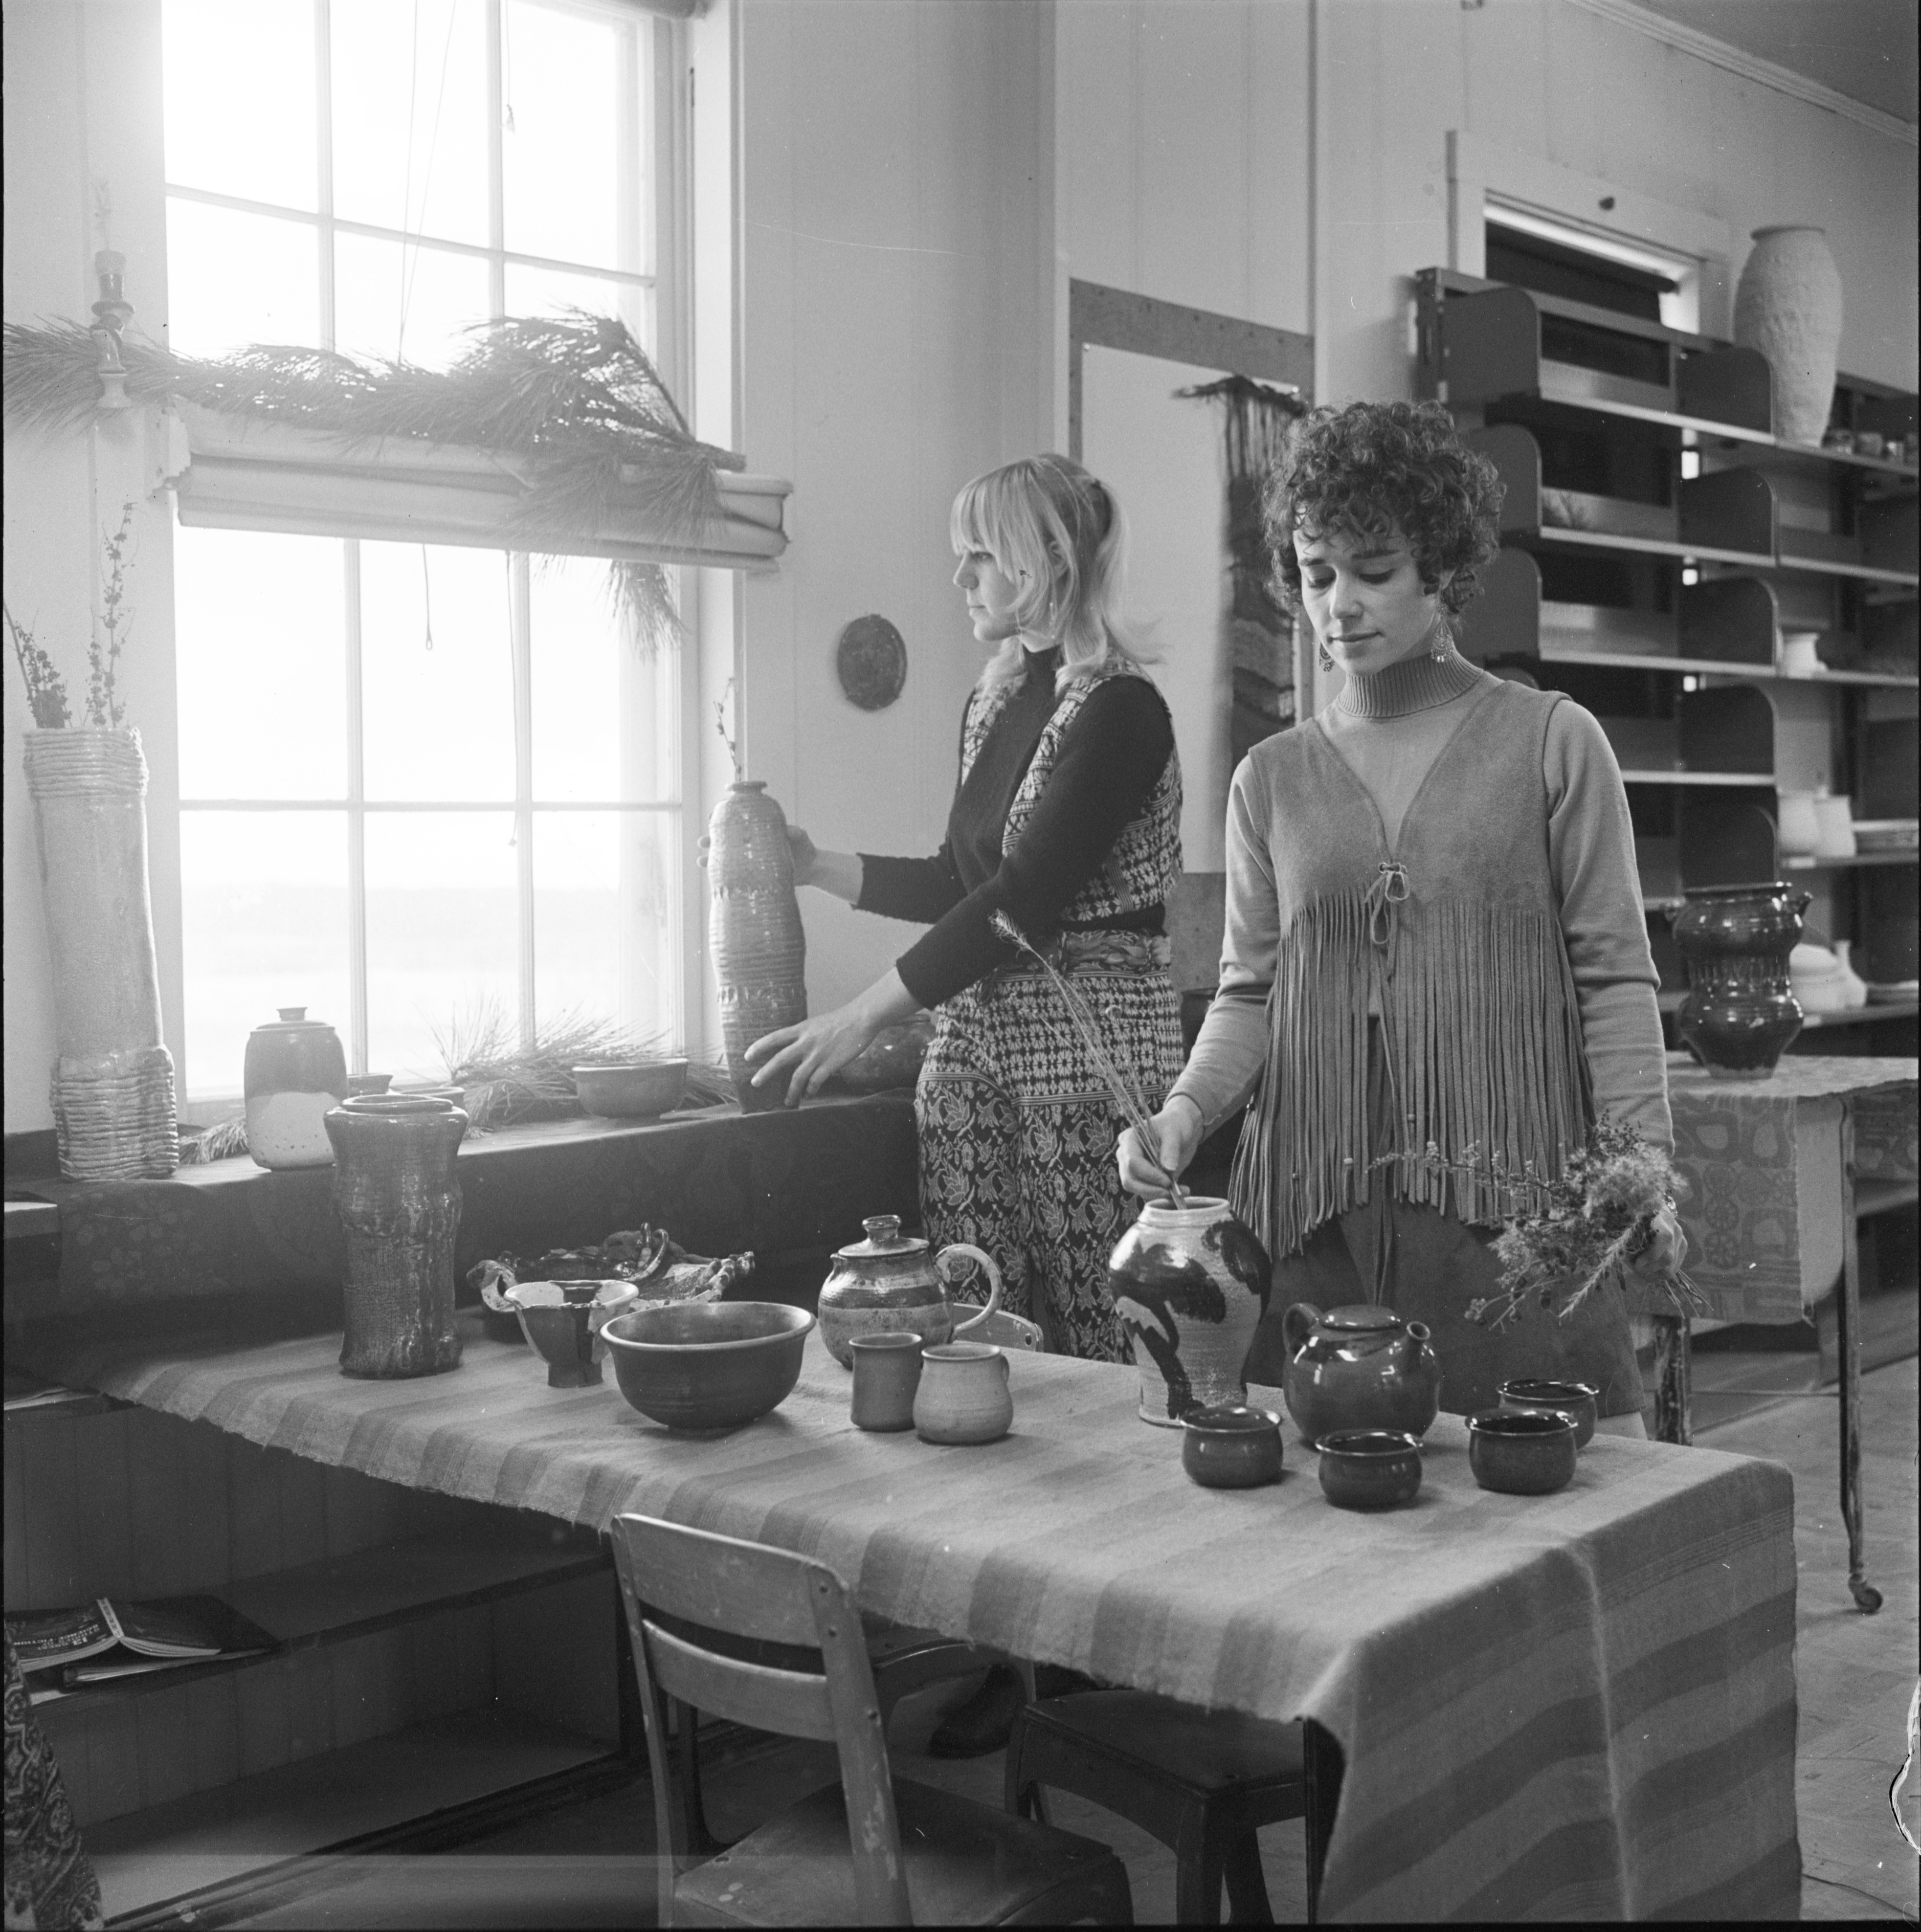 Carol Kieft & Priscilla Dijkman Inside The Schoolhouse Pottery Studio, December 1969 image